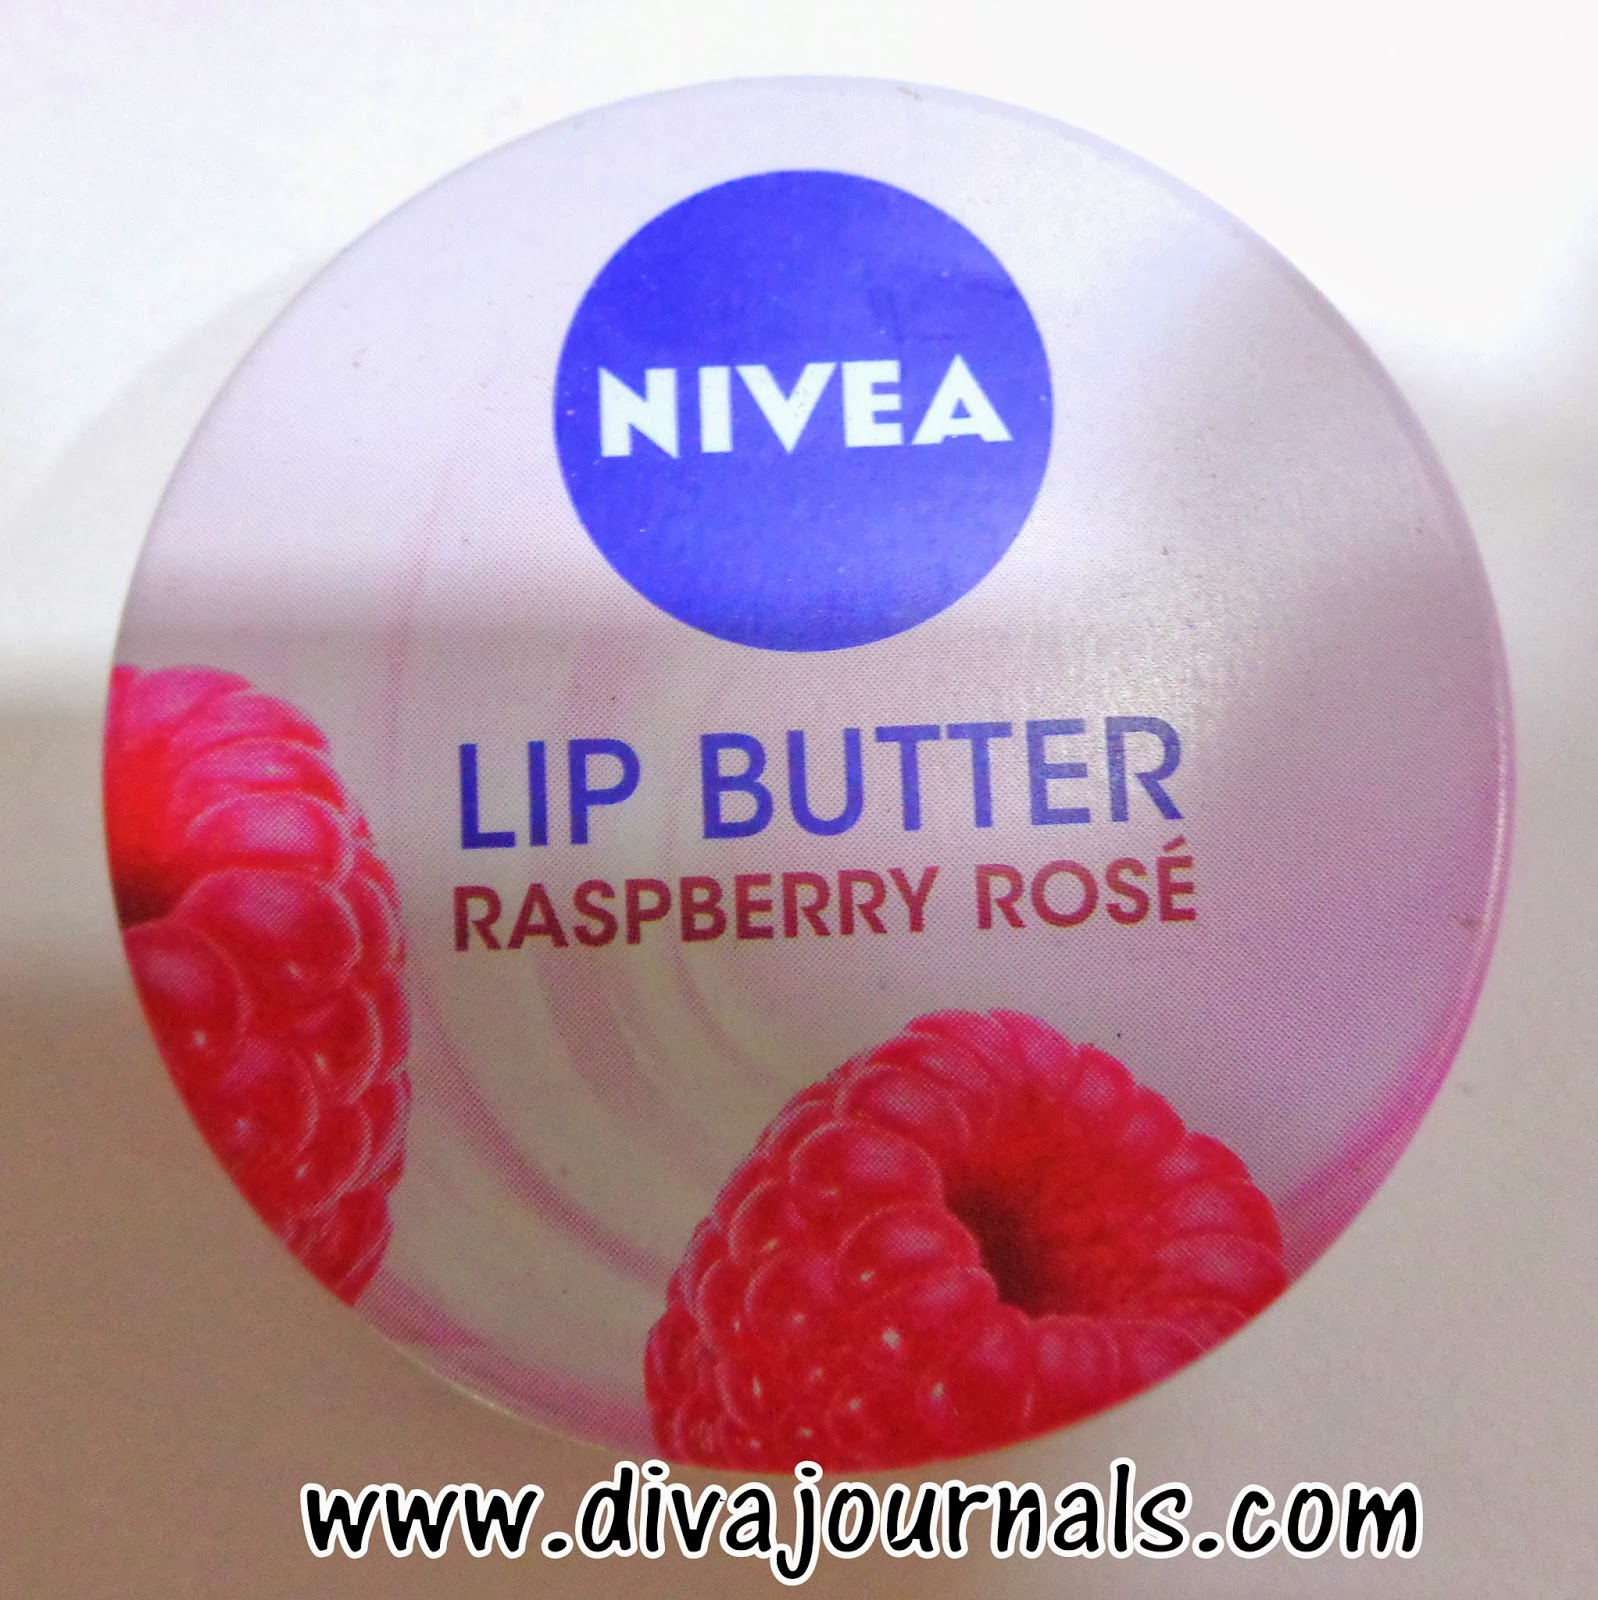 Nivea Lip Butter